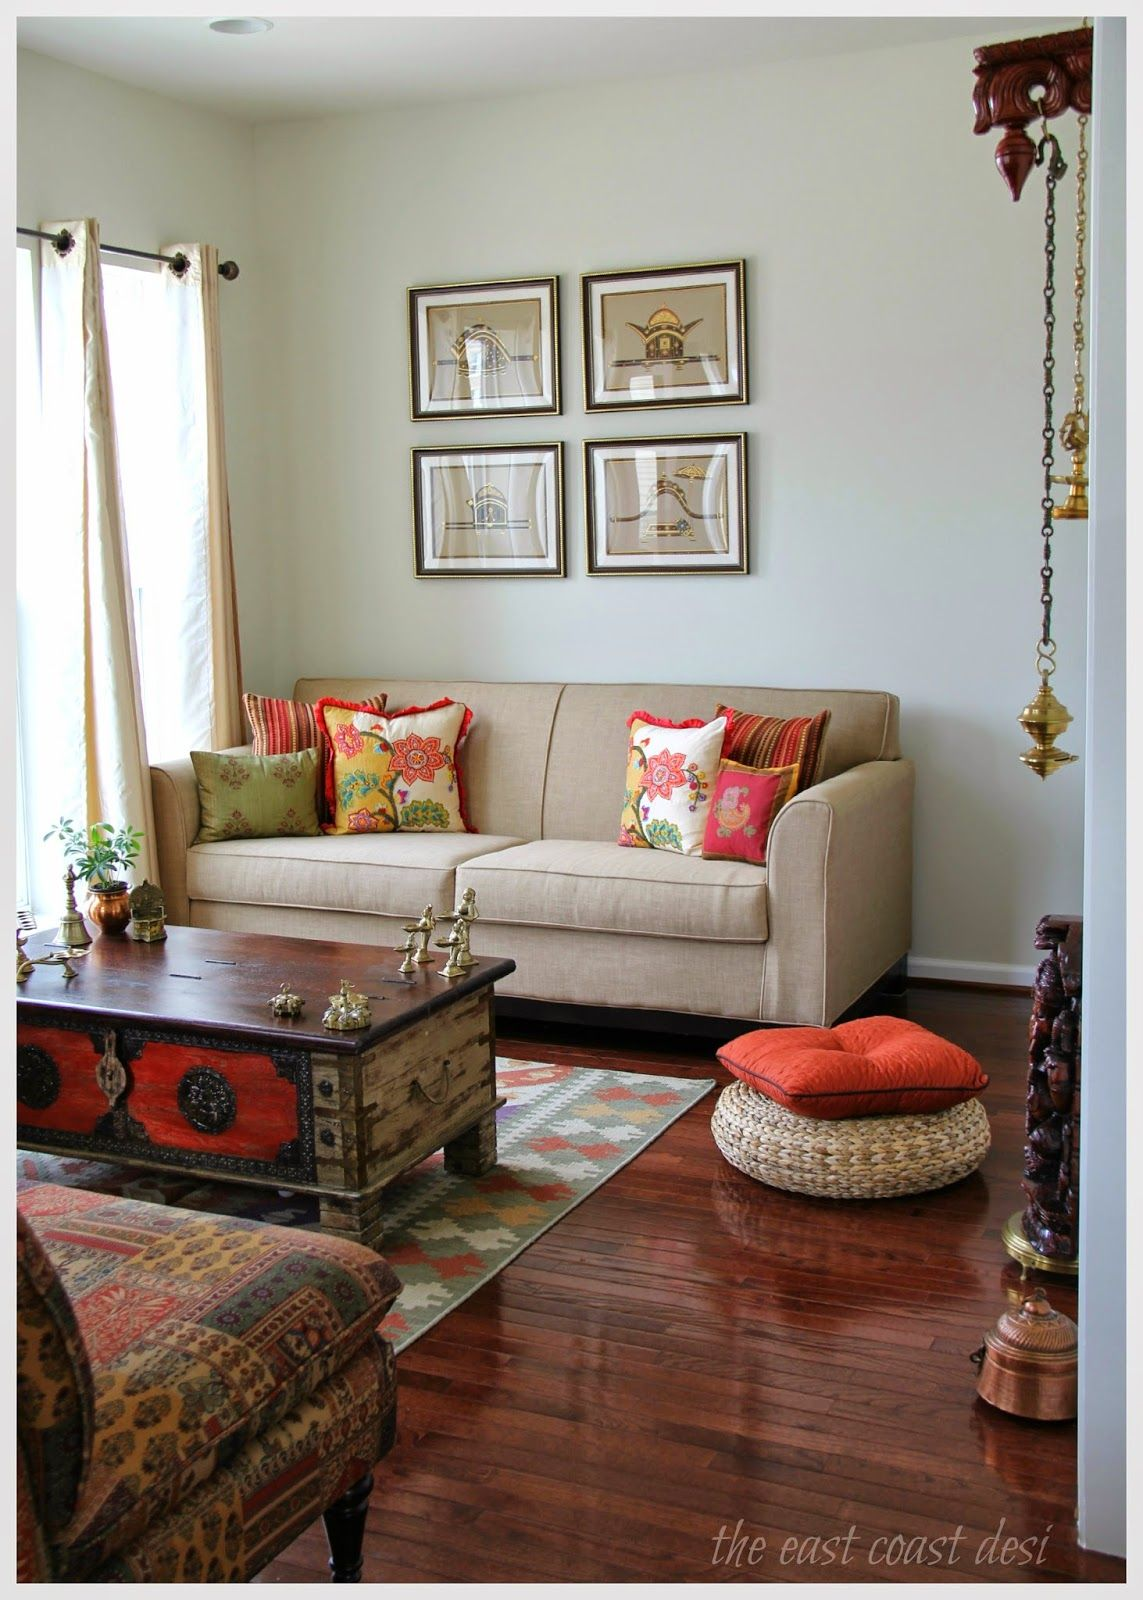 This Is Exactly How My Drawing Room Will Look Like Exactly Like This Decoracion Casa